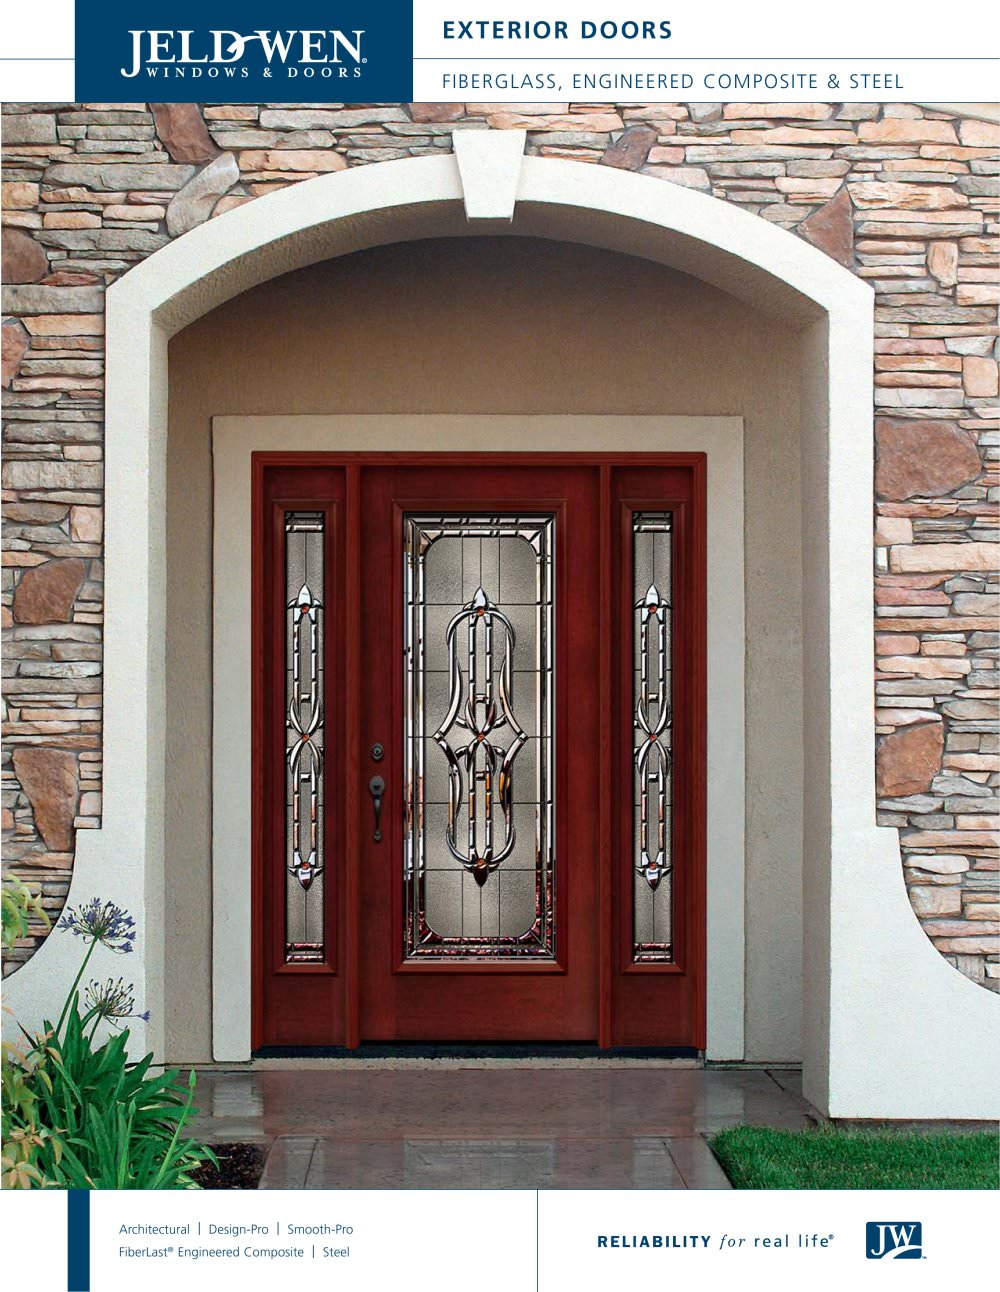 Fiberglass and Steel Exterior Doors - JELD-WEN - PDF Catalogues ...